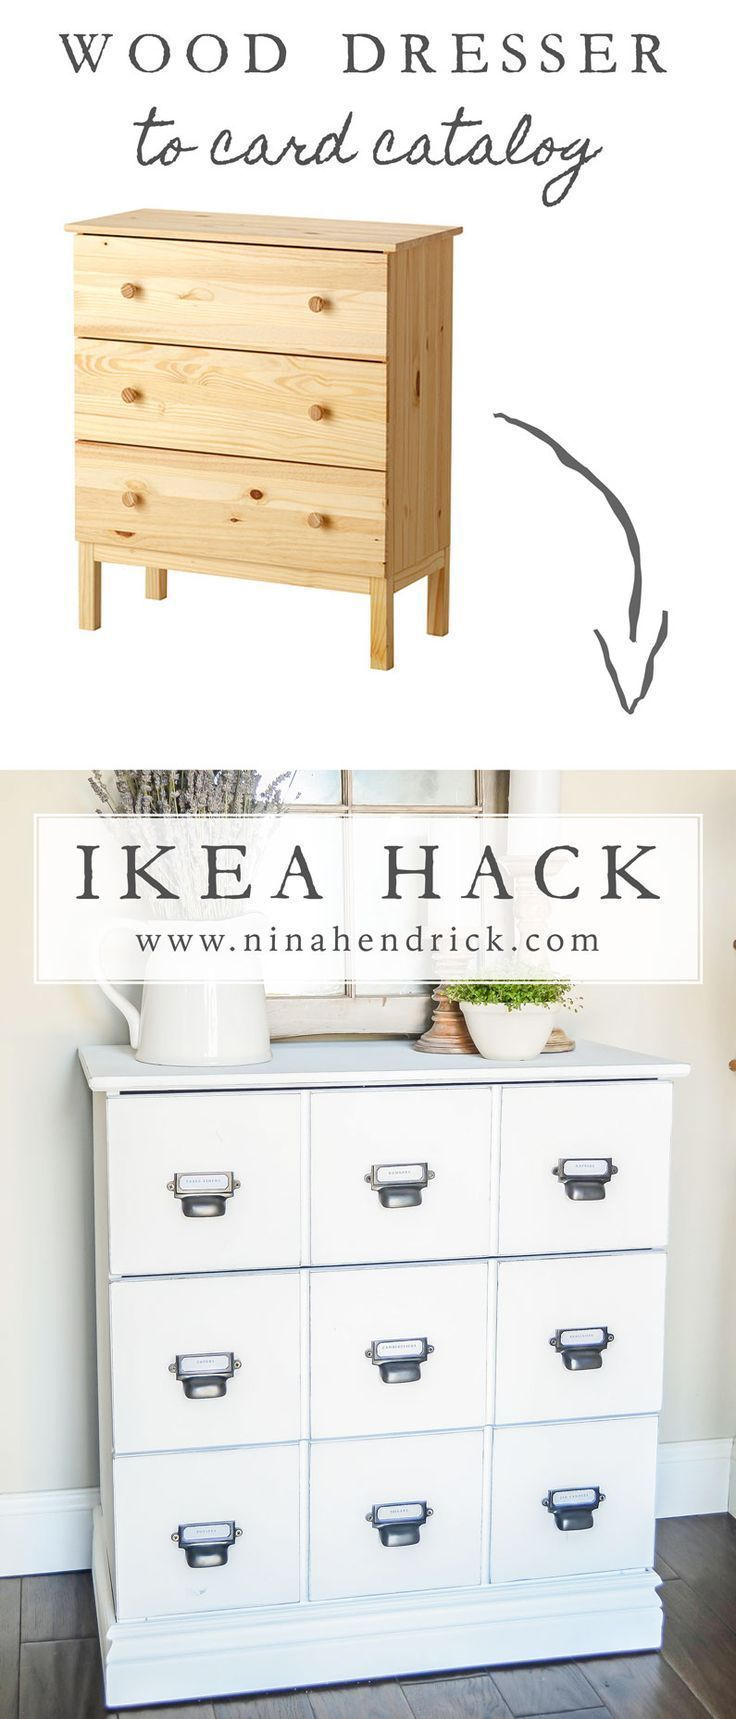 106 best Awesome IKEA Hacks and Projects images on Pinterest ...